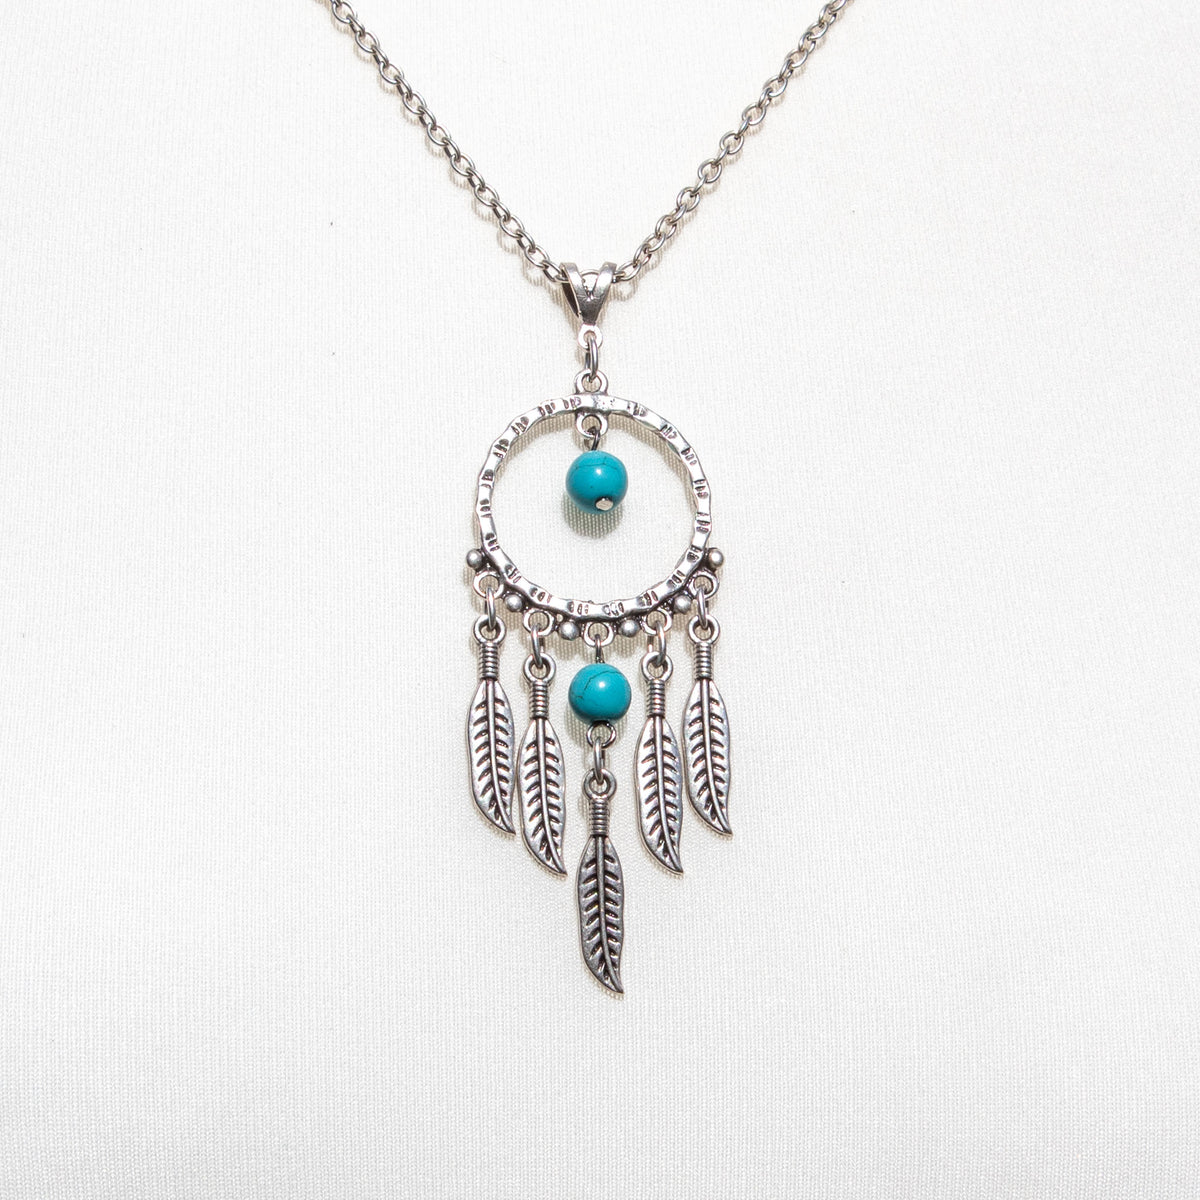 Dreamcatcher Necklace With Turquoise Stones | Necklace - The Naughty Shrew